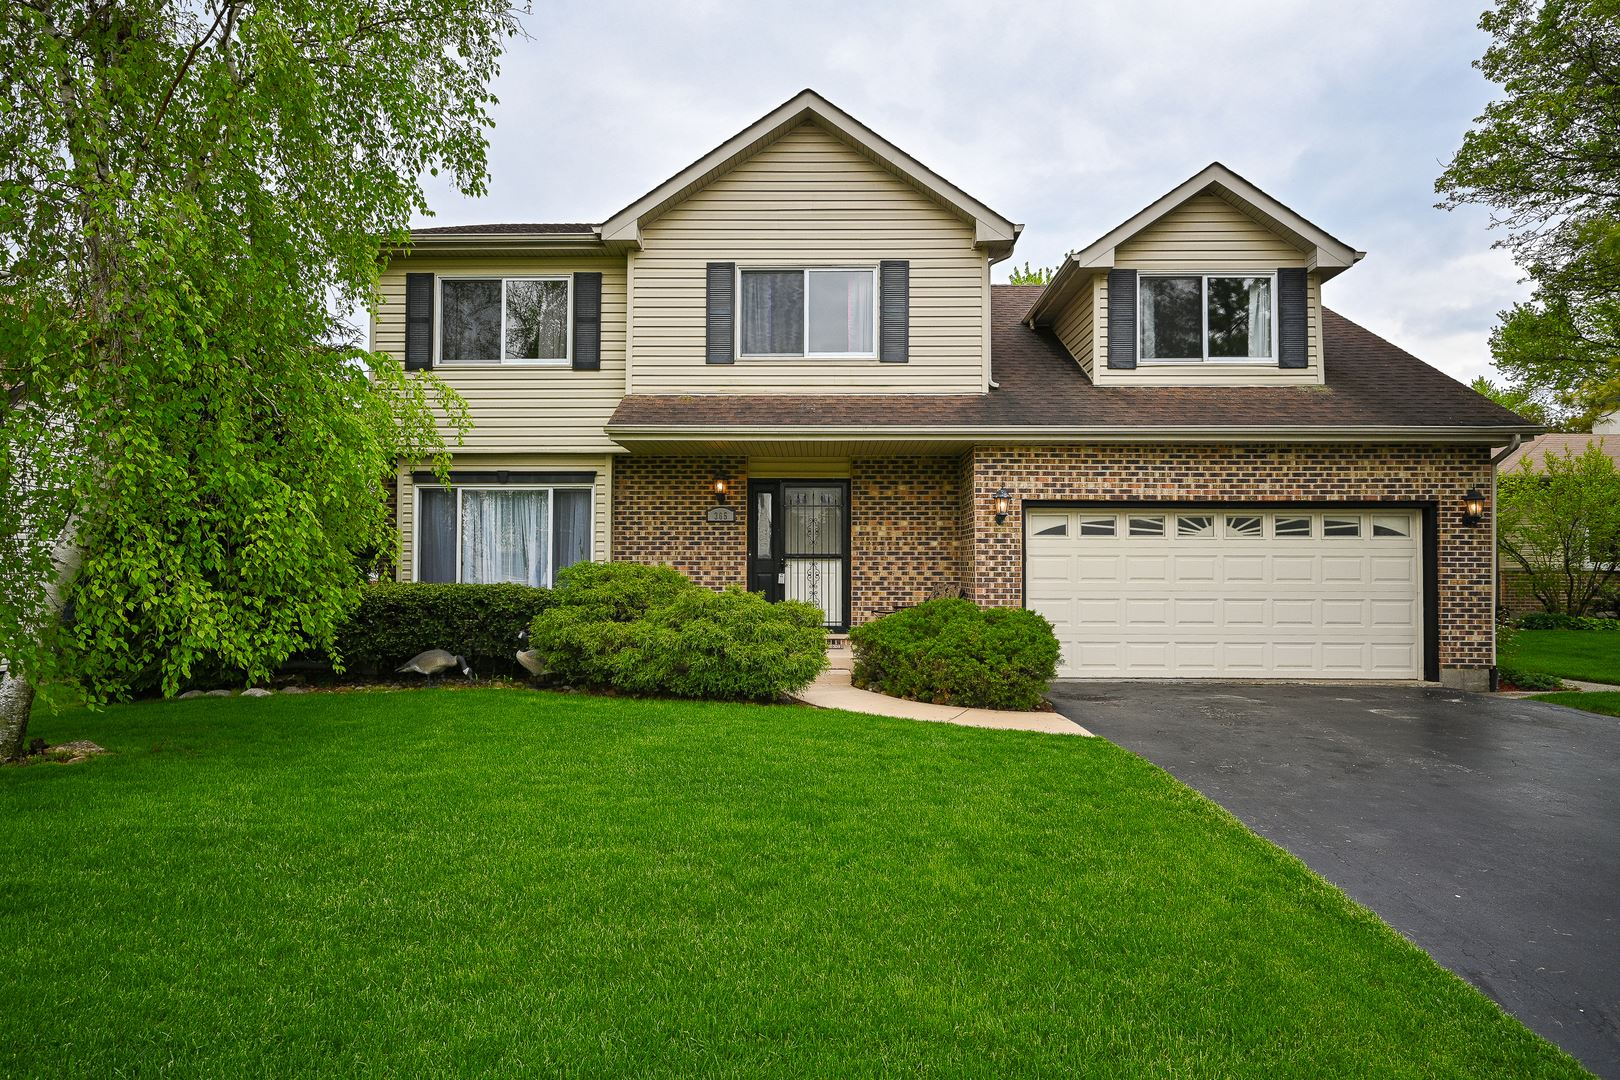 365 Polo Club Drive, Glendale Heights, IL 60139 - #: 10720069